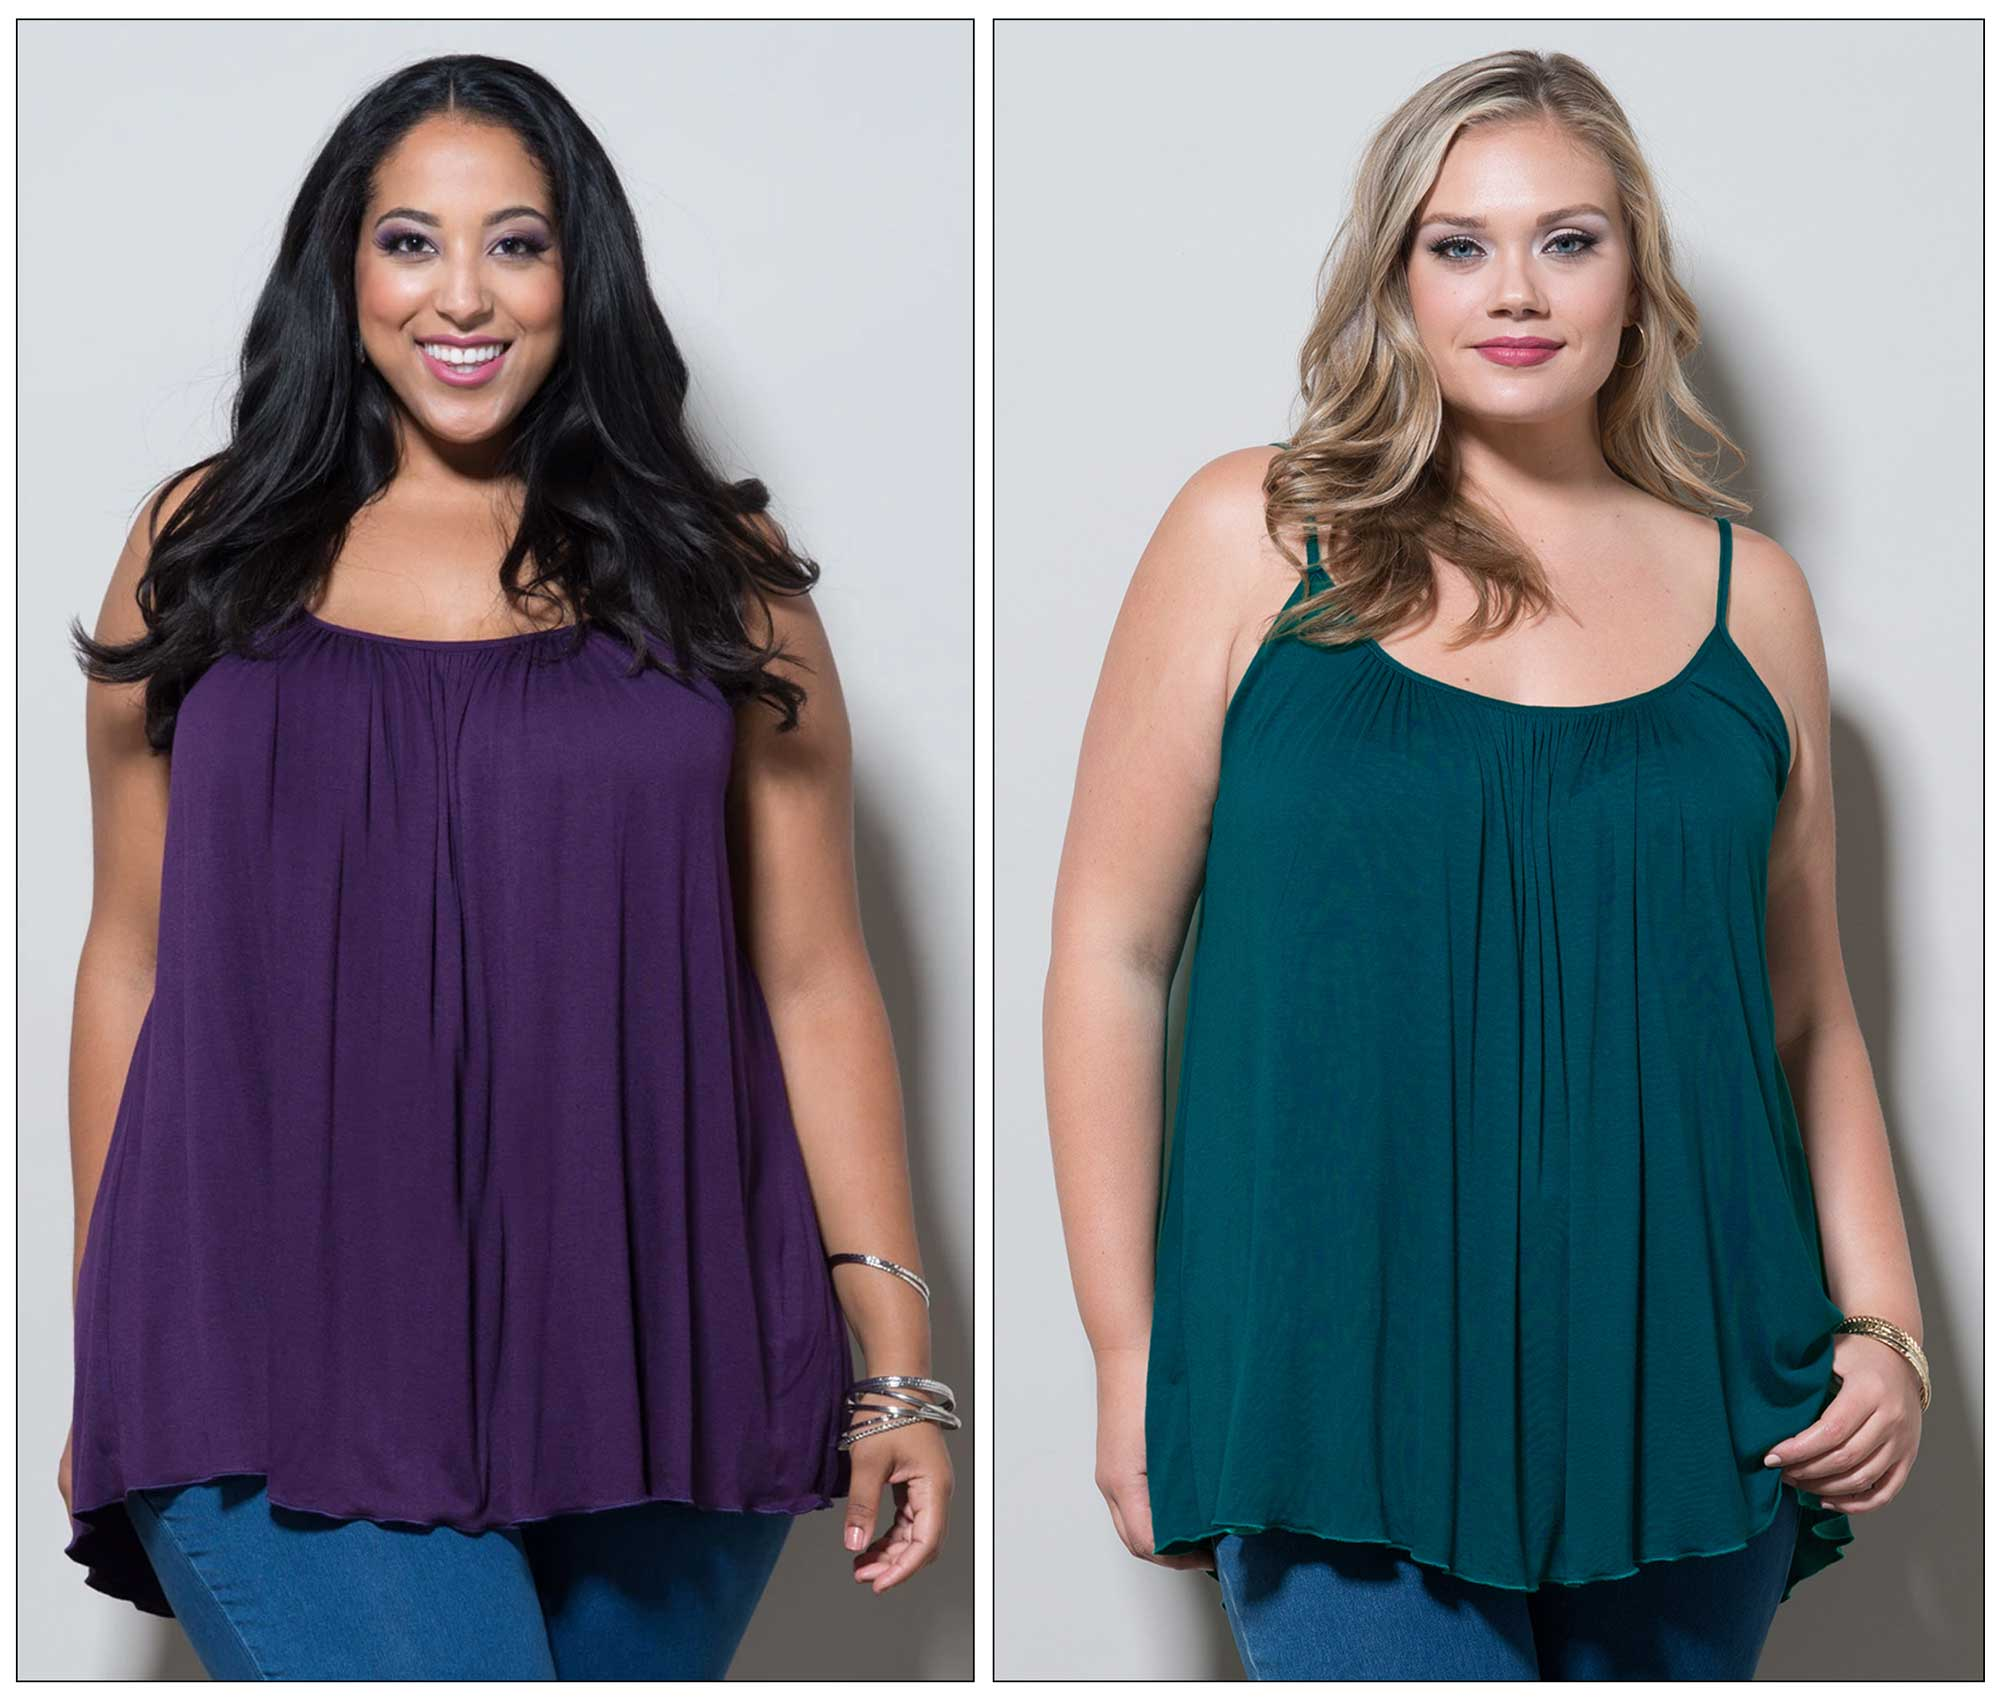 Trendy Plus Size Fashion | Sizes 14 to 36 – SWAK Designs